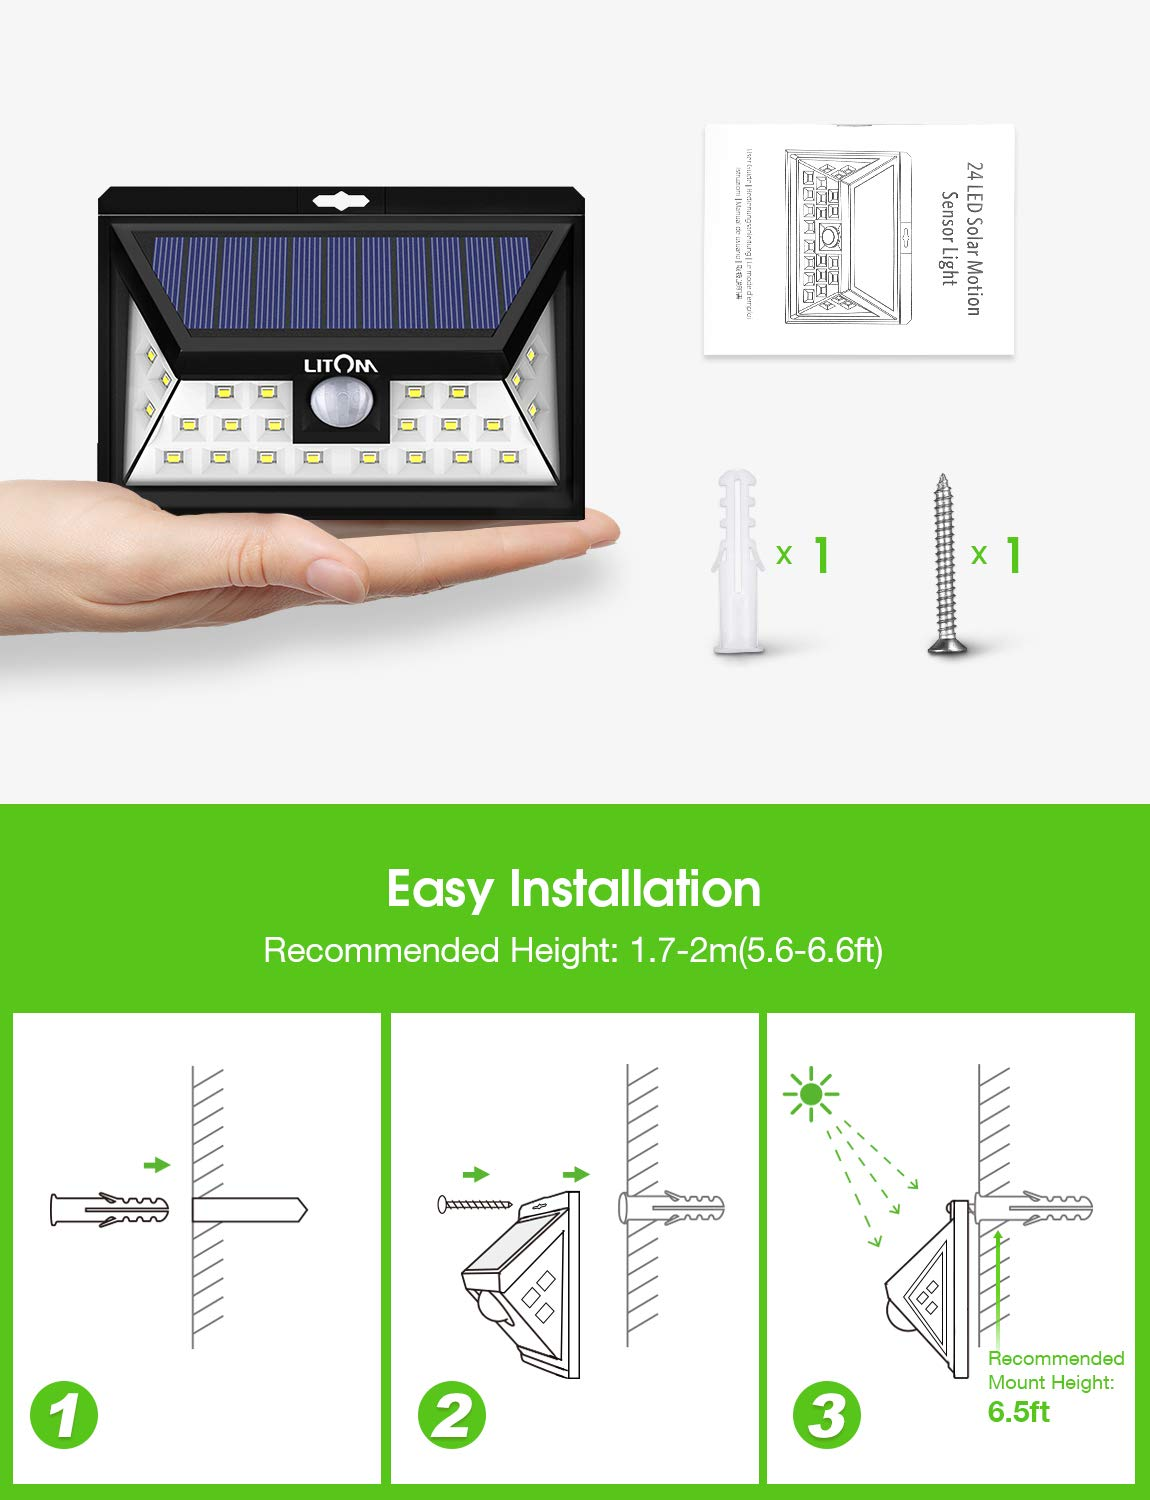 Easy-to-Install Security Lights for Front Door IP65 Waterproof Yard 3 Optional Modes Wireless Motion Sensor Light with 270/° Wide Angle LITOM Original Solar Lights Outdoor Deck Garage